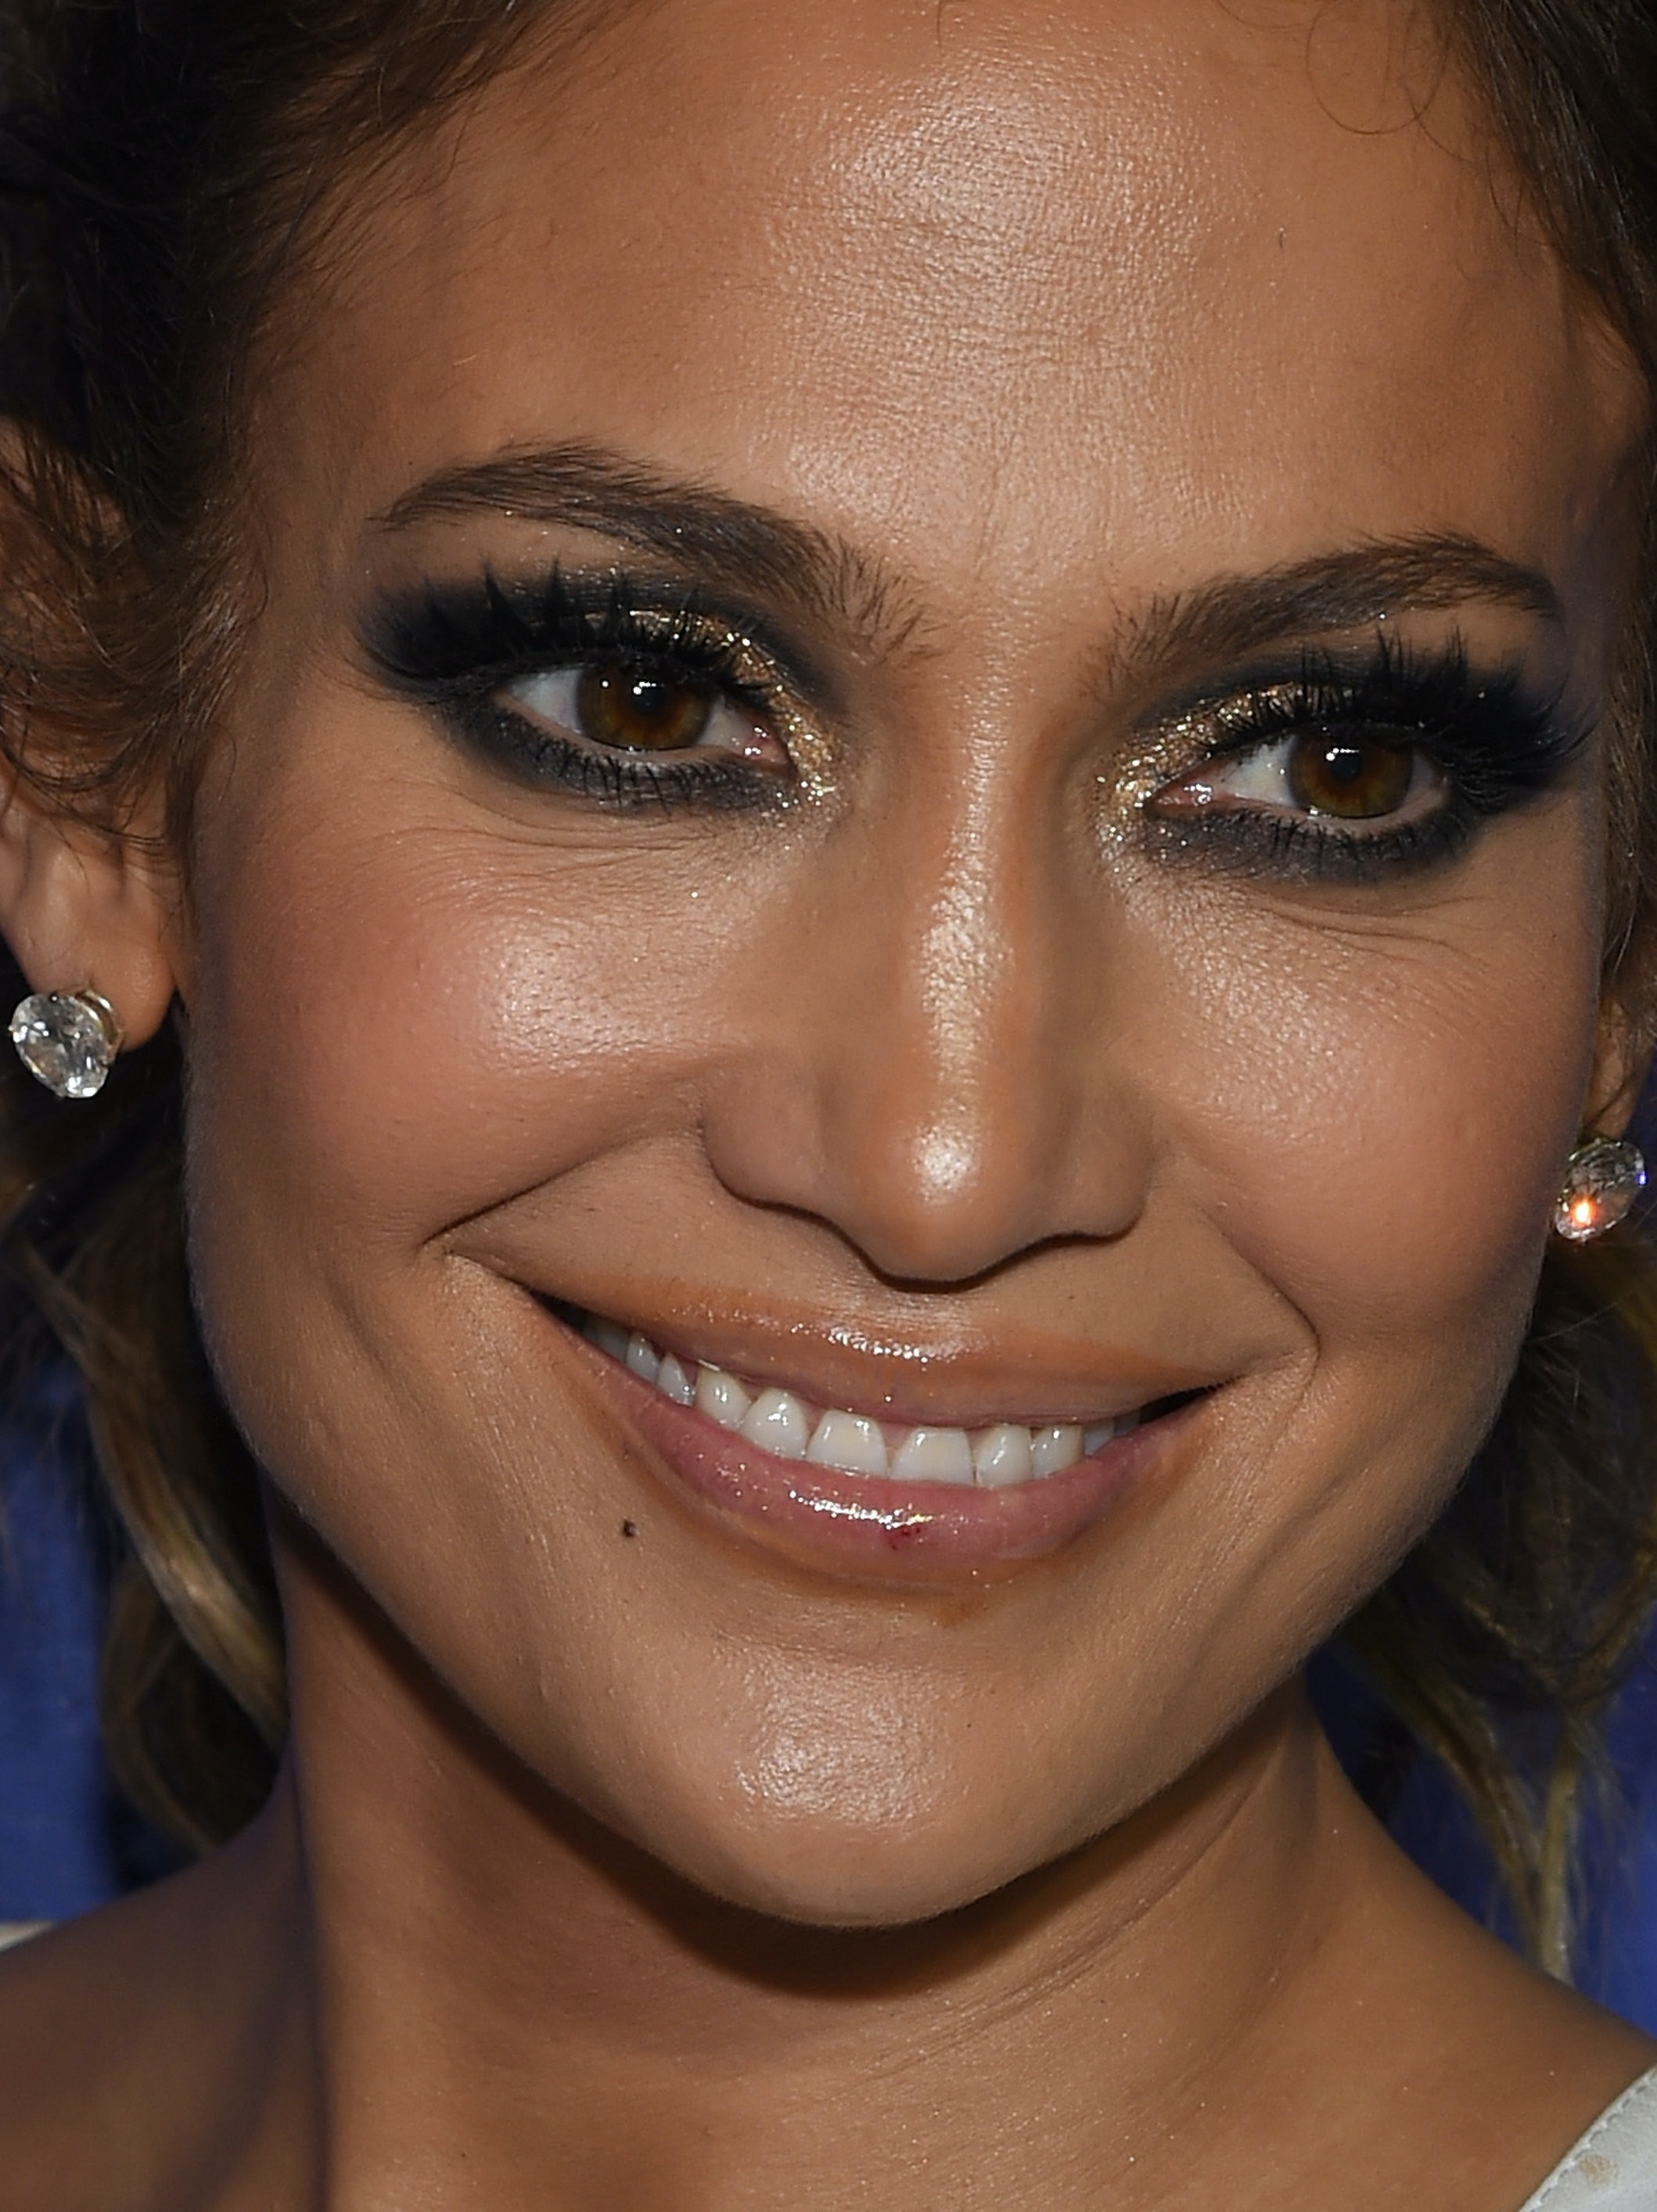 LAS VEGAS, NV - JANUARY 21:  Singer/actress Jennifer Lopez attends the after party for her residency 'JENNIFER LOPEZ: ALL I HAVE' and the grand opening of Mr. Chow at Caesars Palace on January 21, 2016 in Las Vegas, Nevada.  (Photo by Ethan Miller/Getty Images)